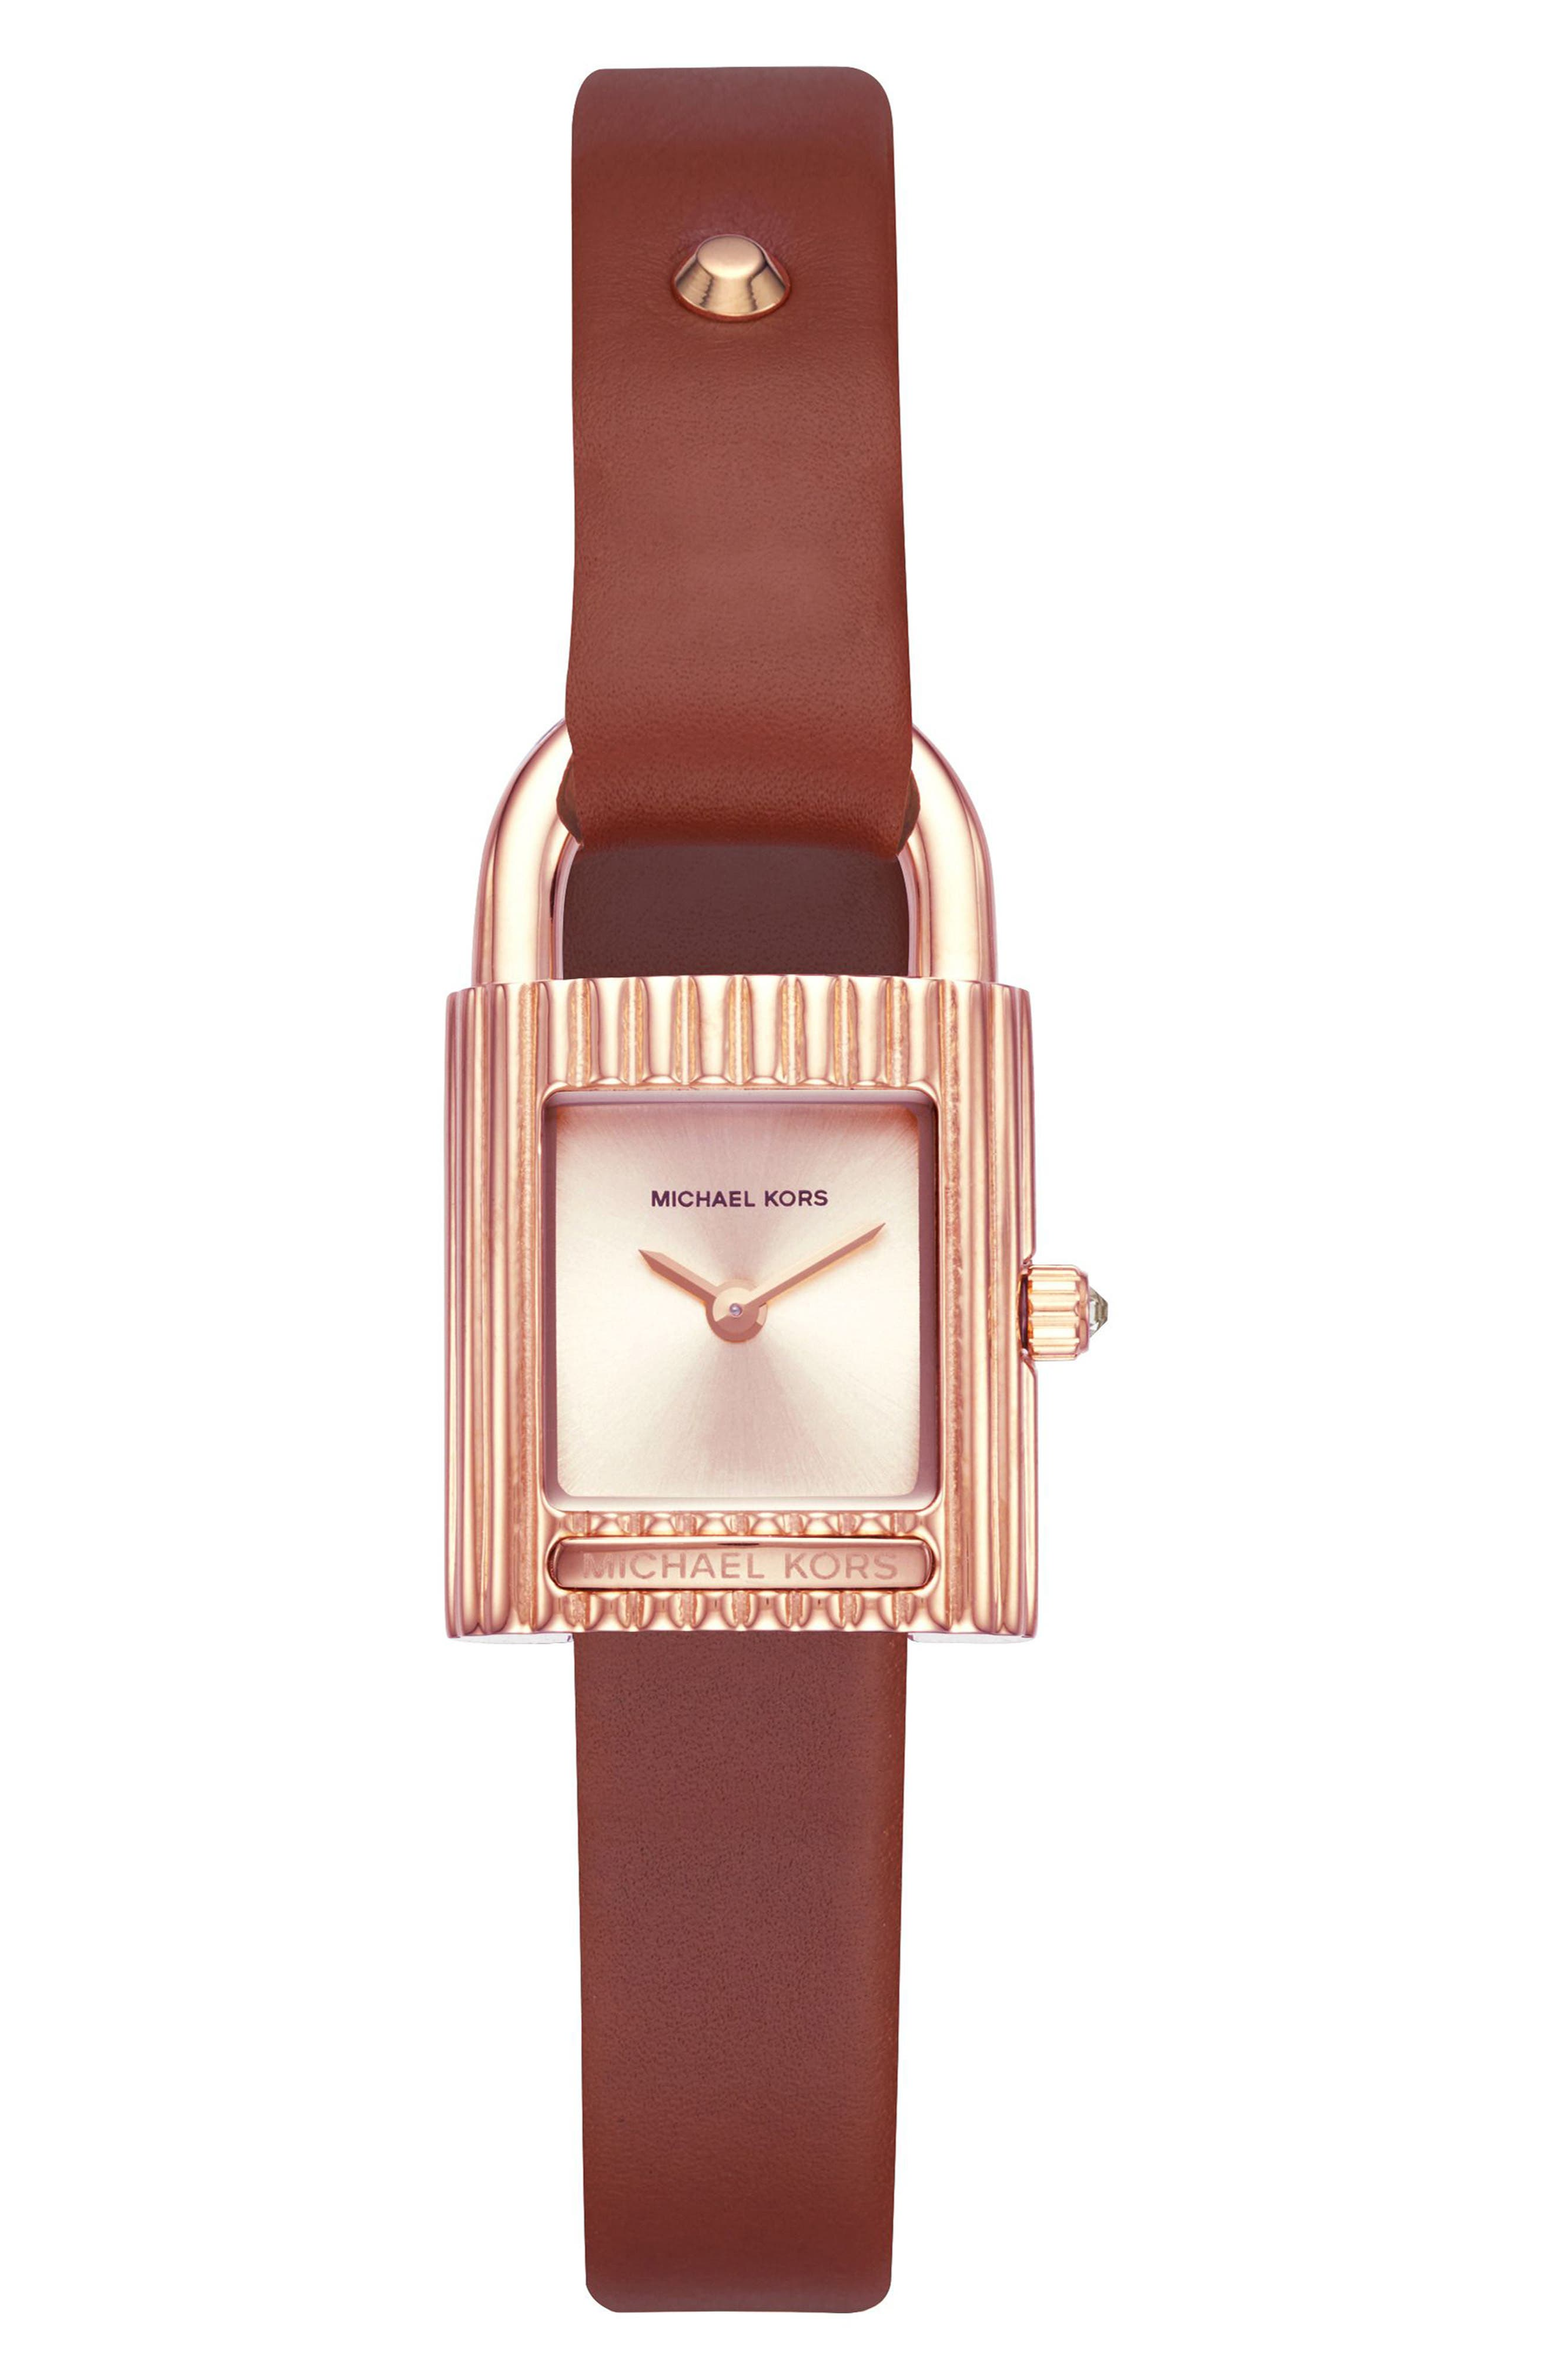 Main Image - Michael Kors Isadore Leather Strap Watch, 22mm